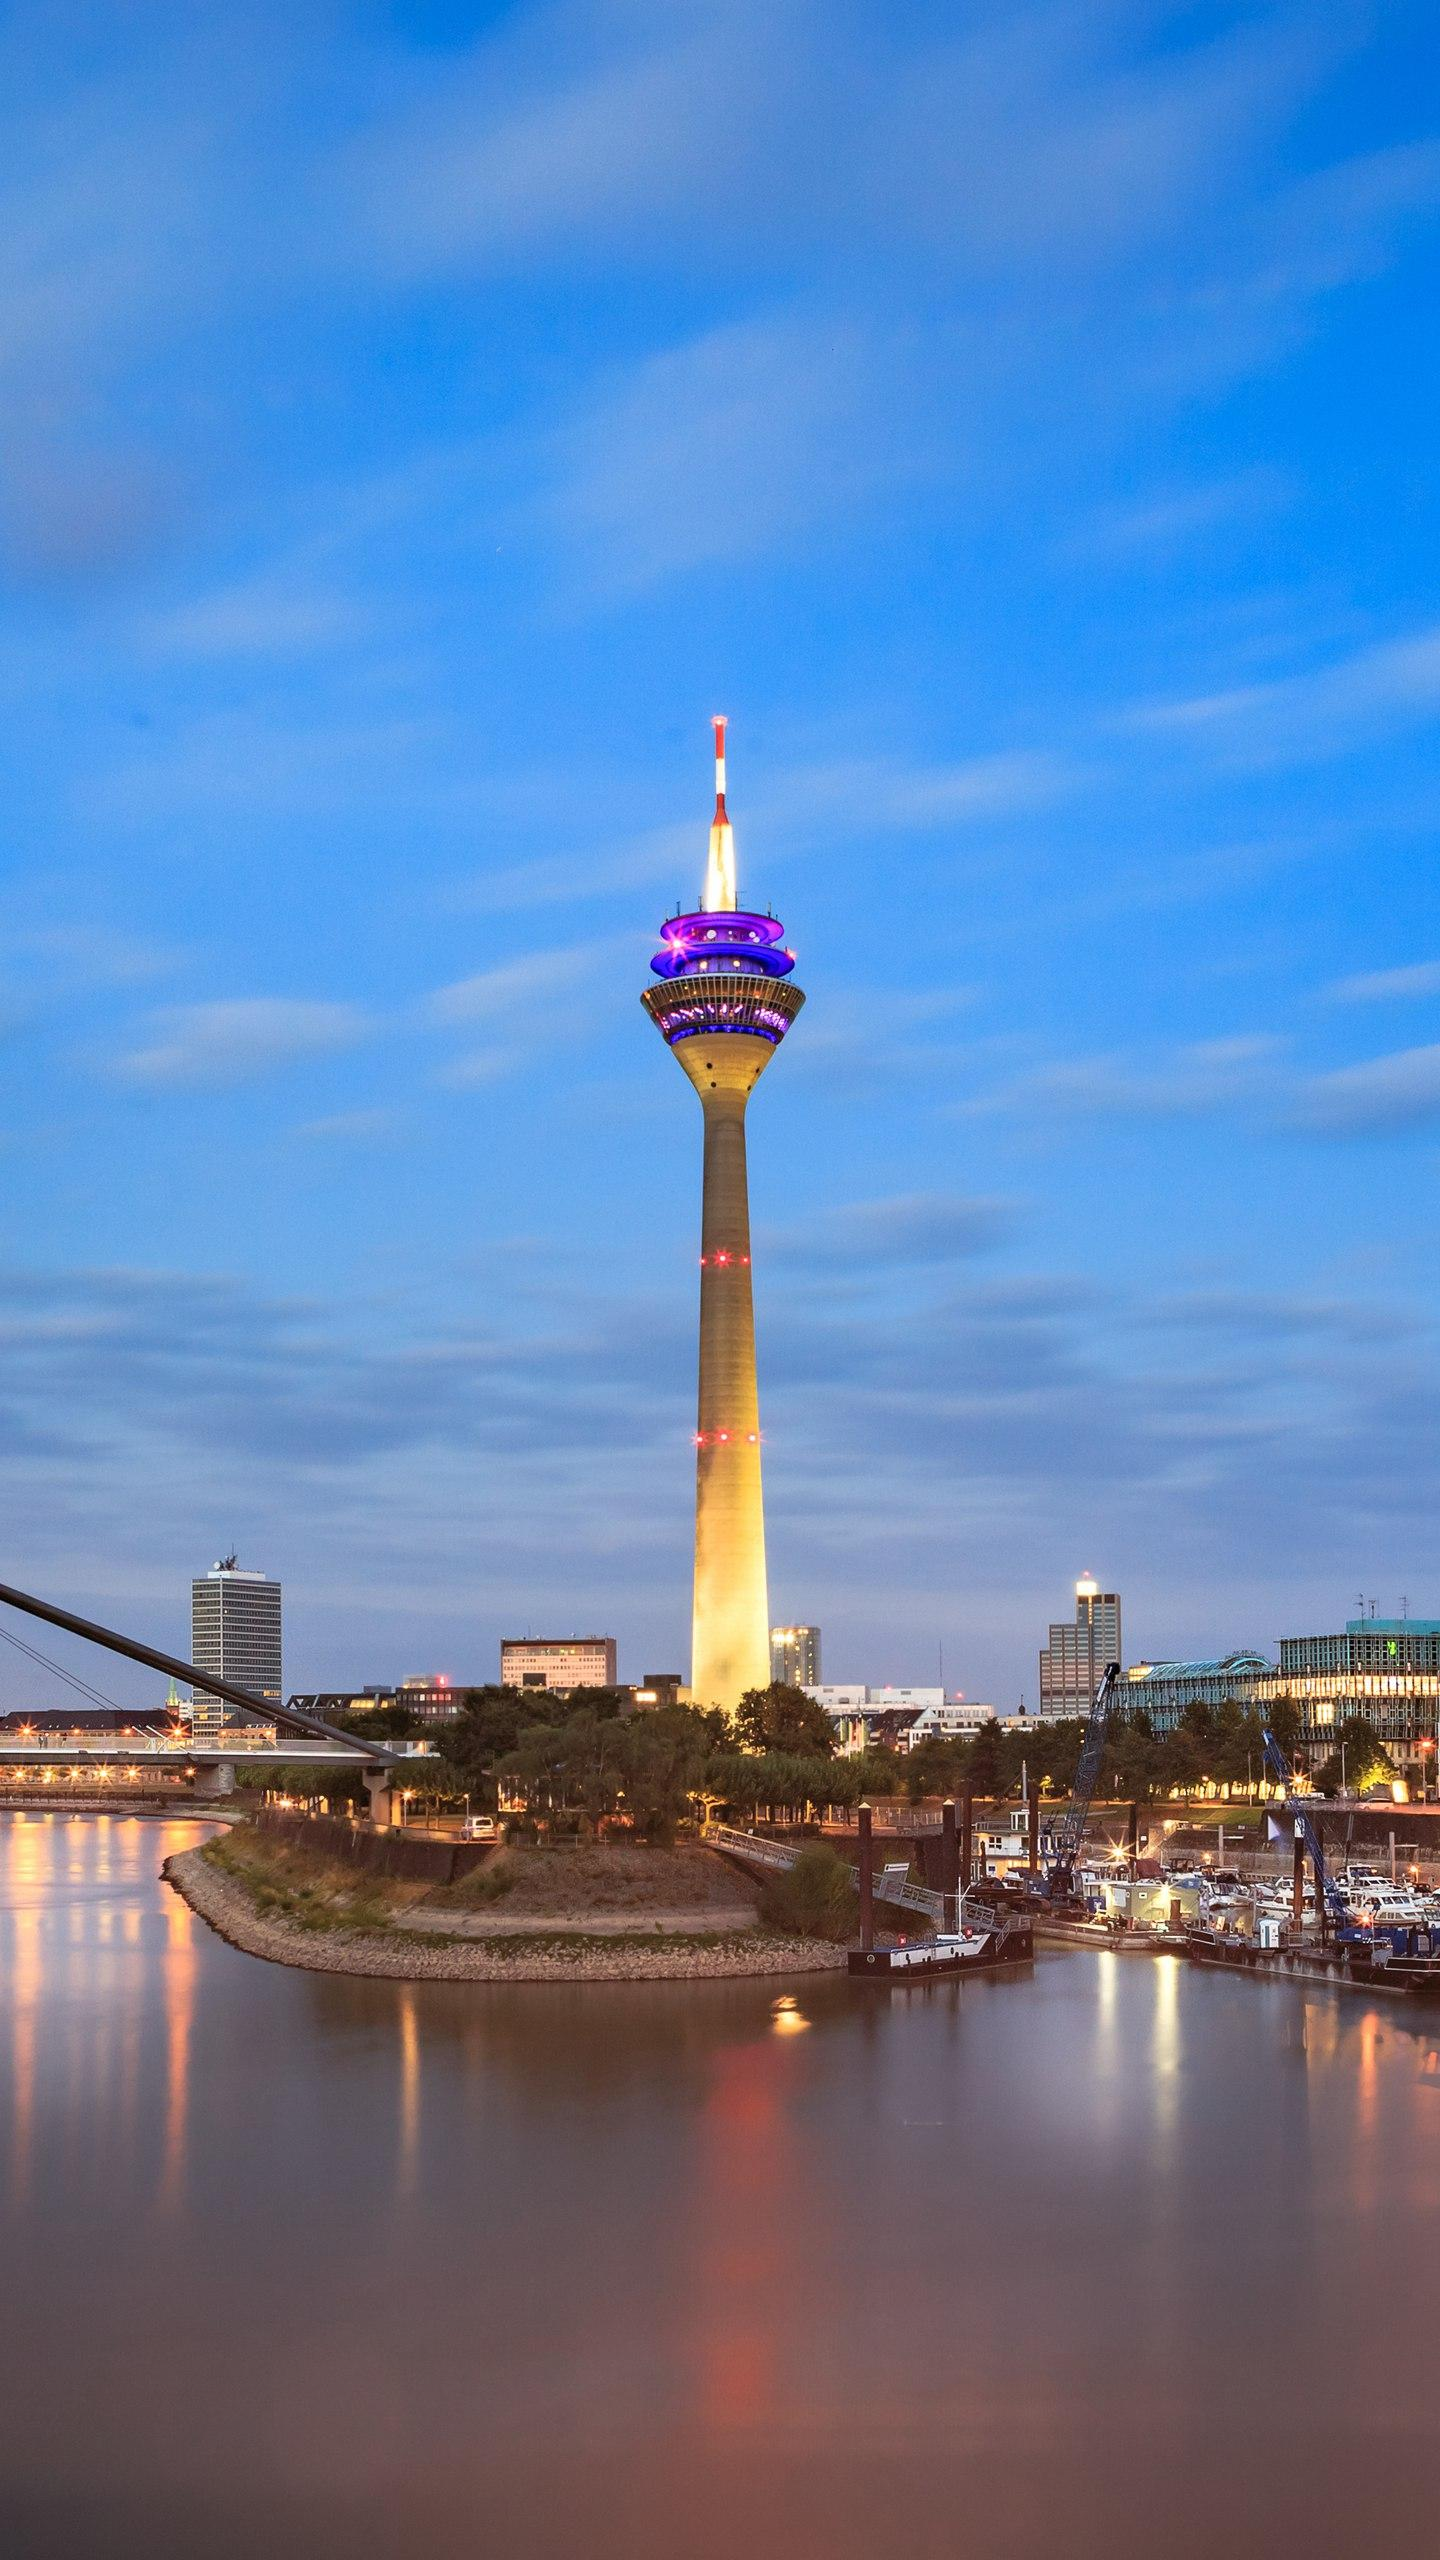 Germany - Düsseldorf. Located on the banks of the Rhine, it is a famous city of German culture and art. It is also a tourist attraction.